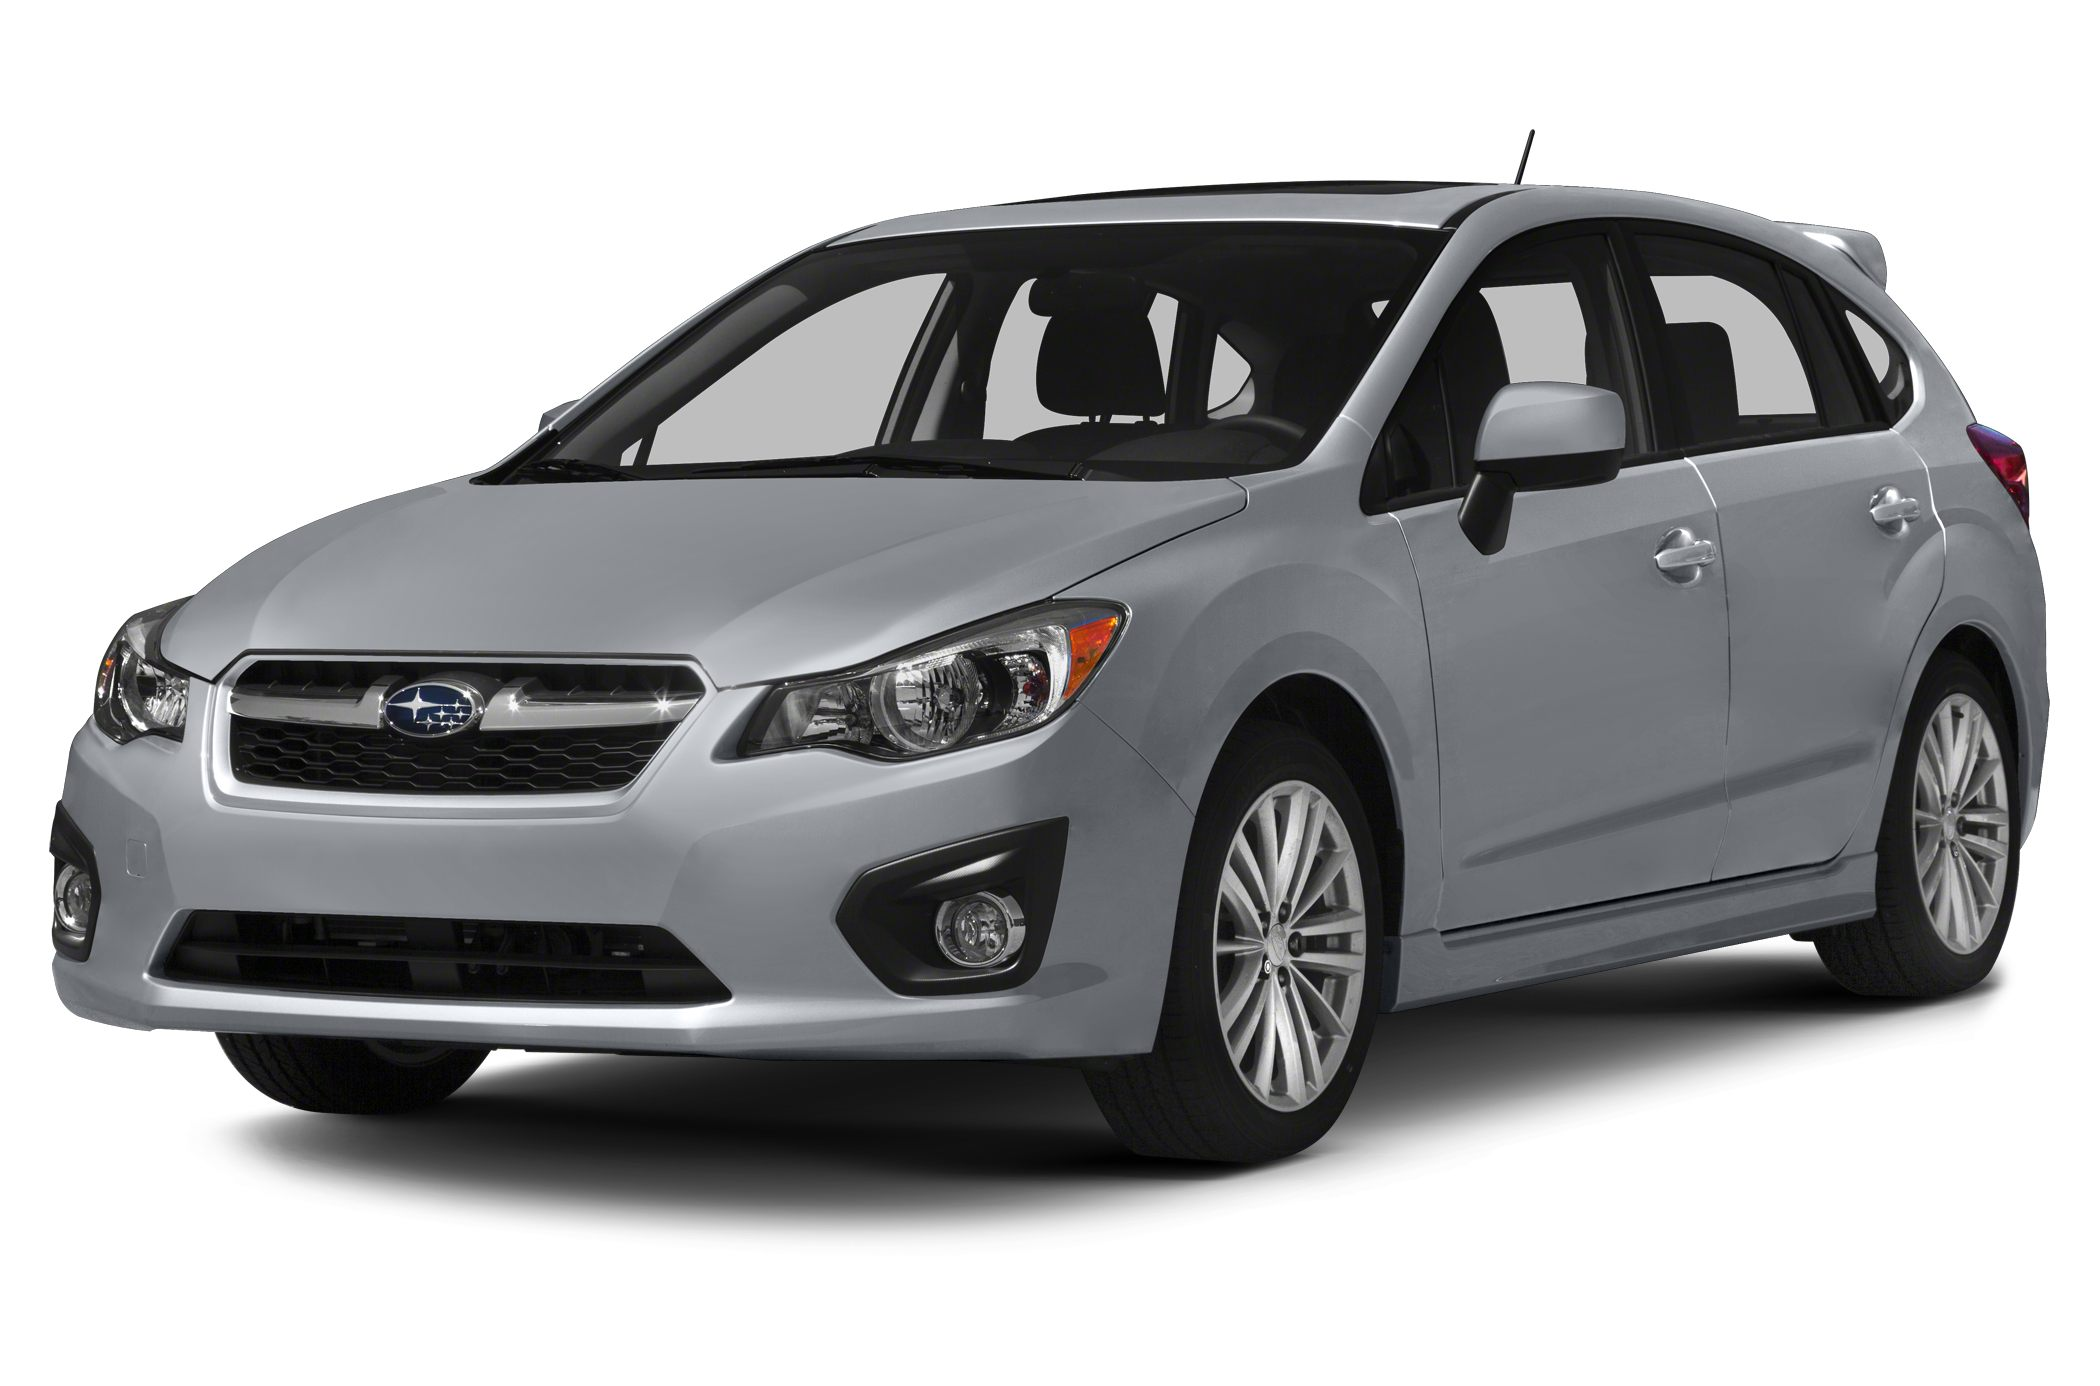 2014 Subaru Impreza 2.0i Sport Premium Hatchback for sale in Rhinelander for $19,985 with 8,100 miles